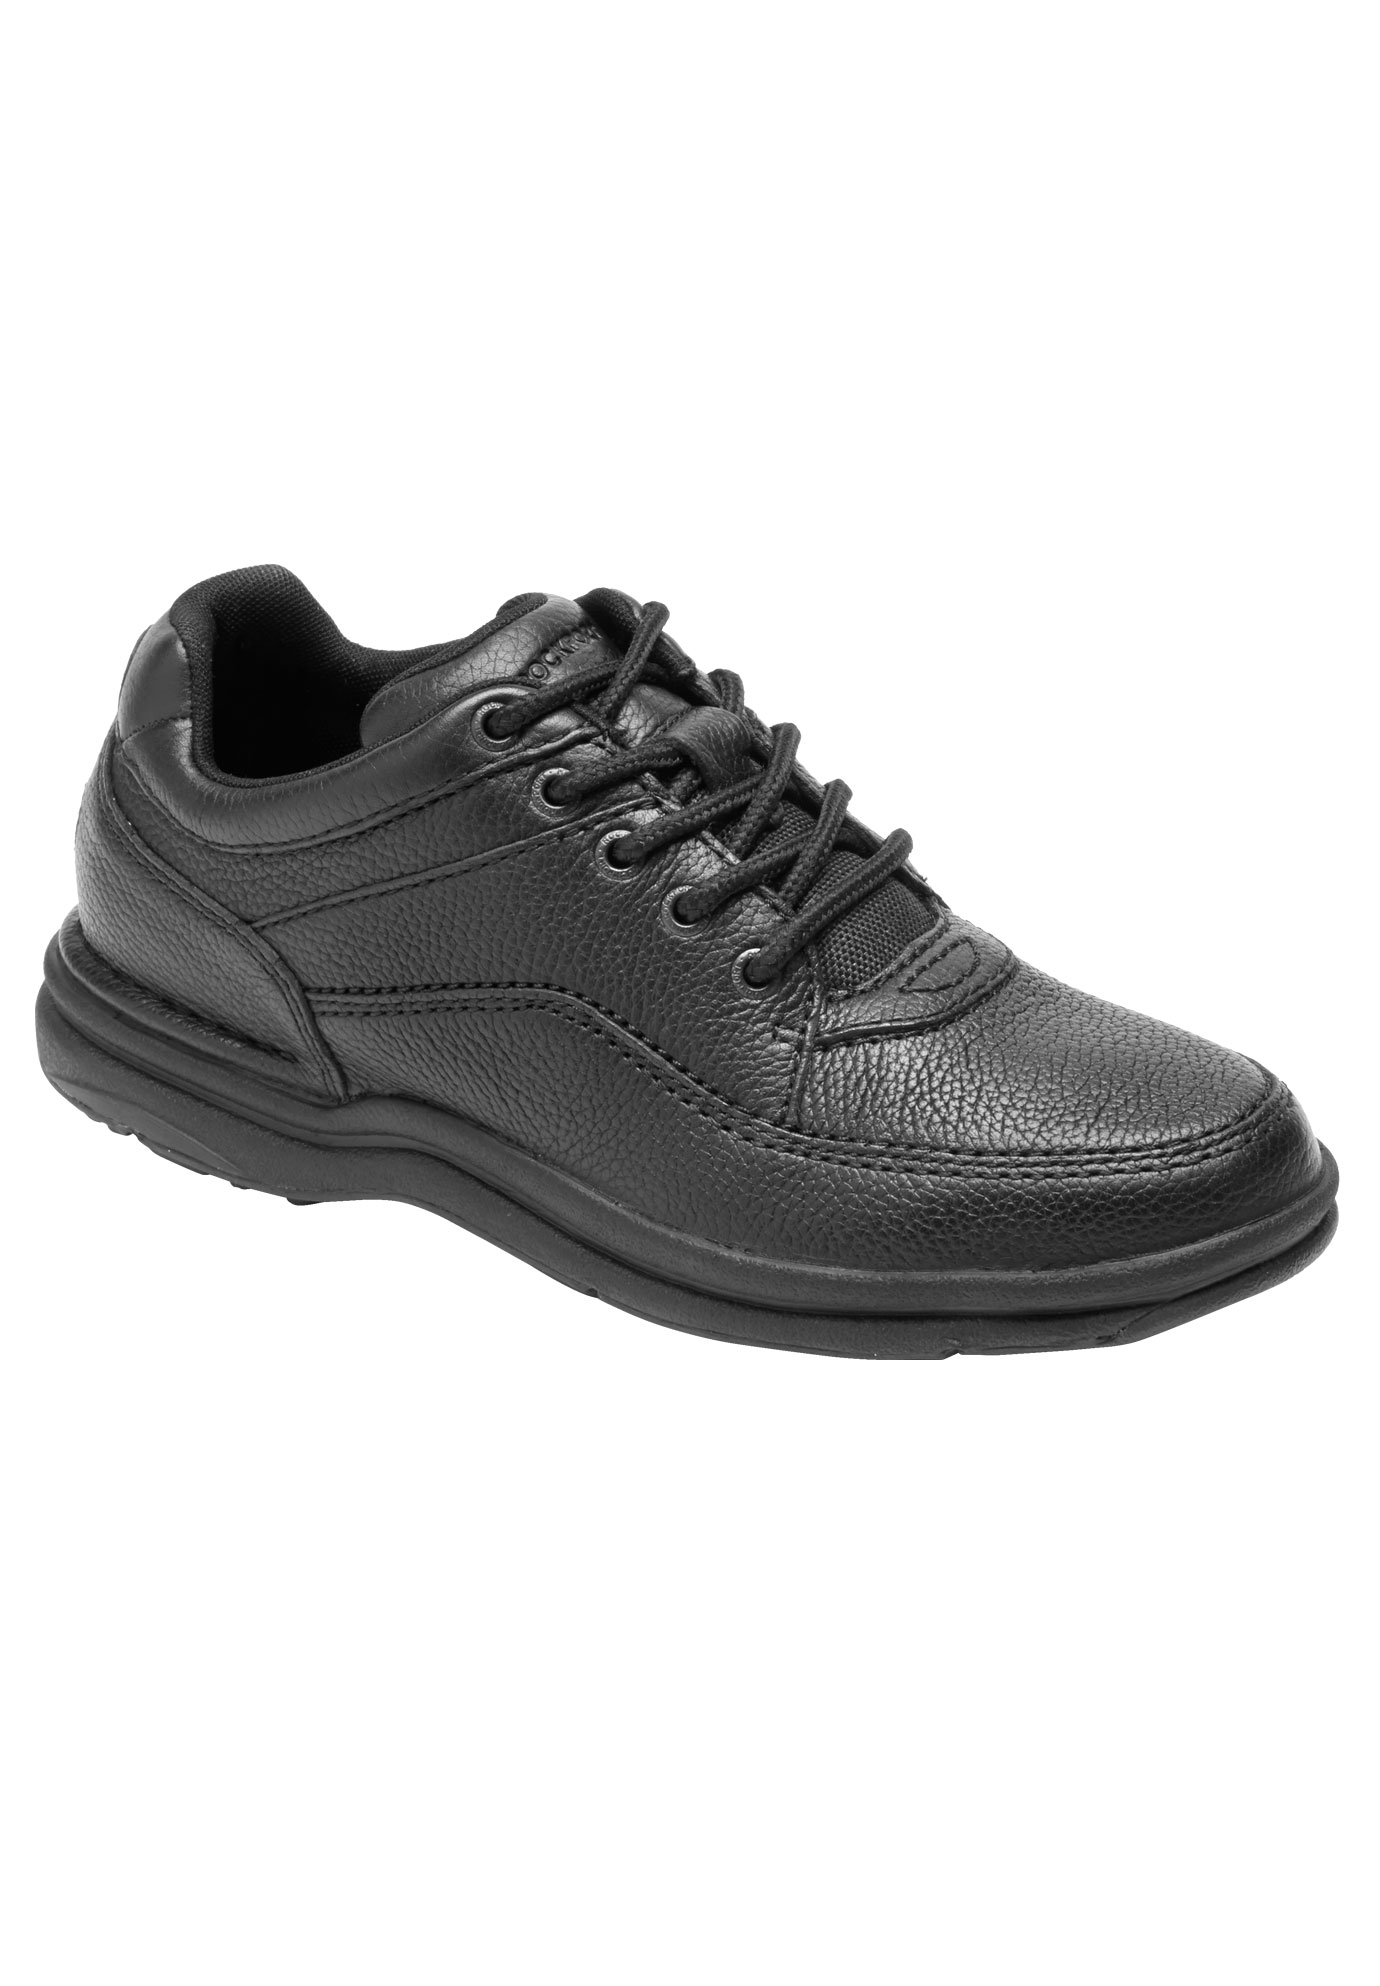 World Tour Classic Walking Shoe by Rockport®, BLACK TUMBLED, hi-res